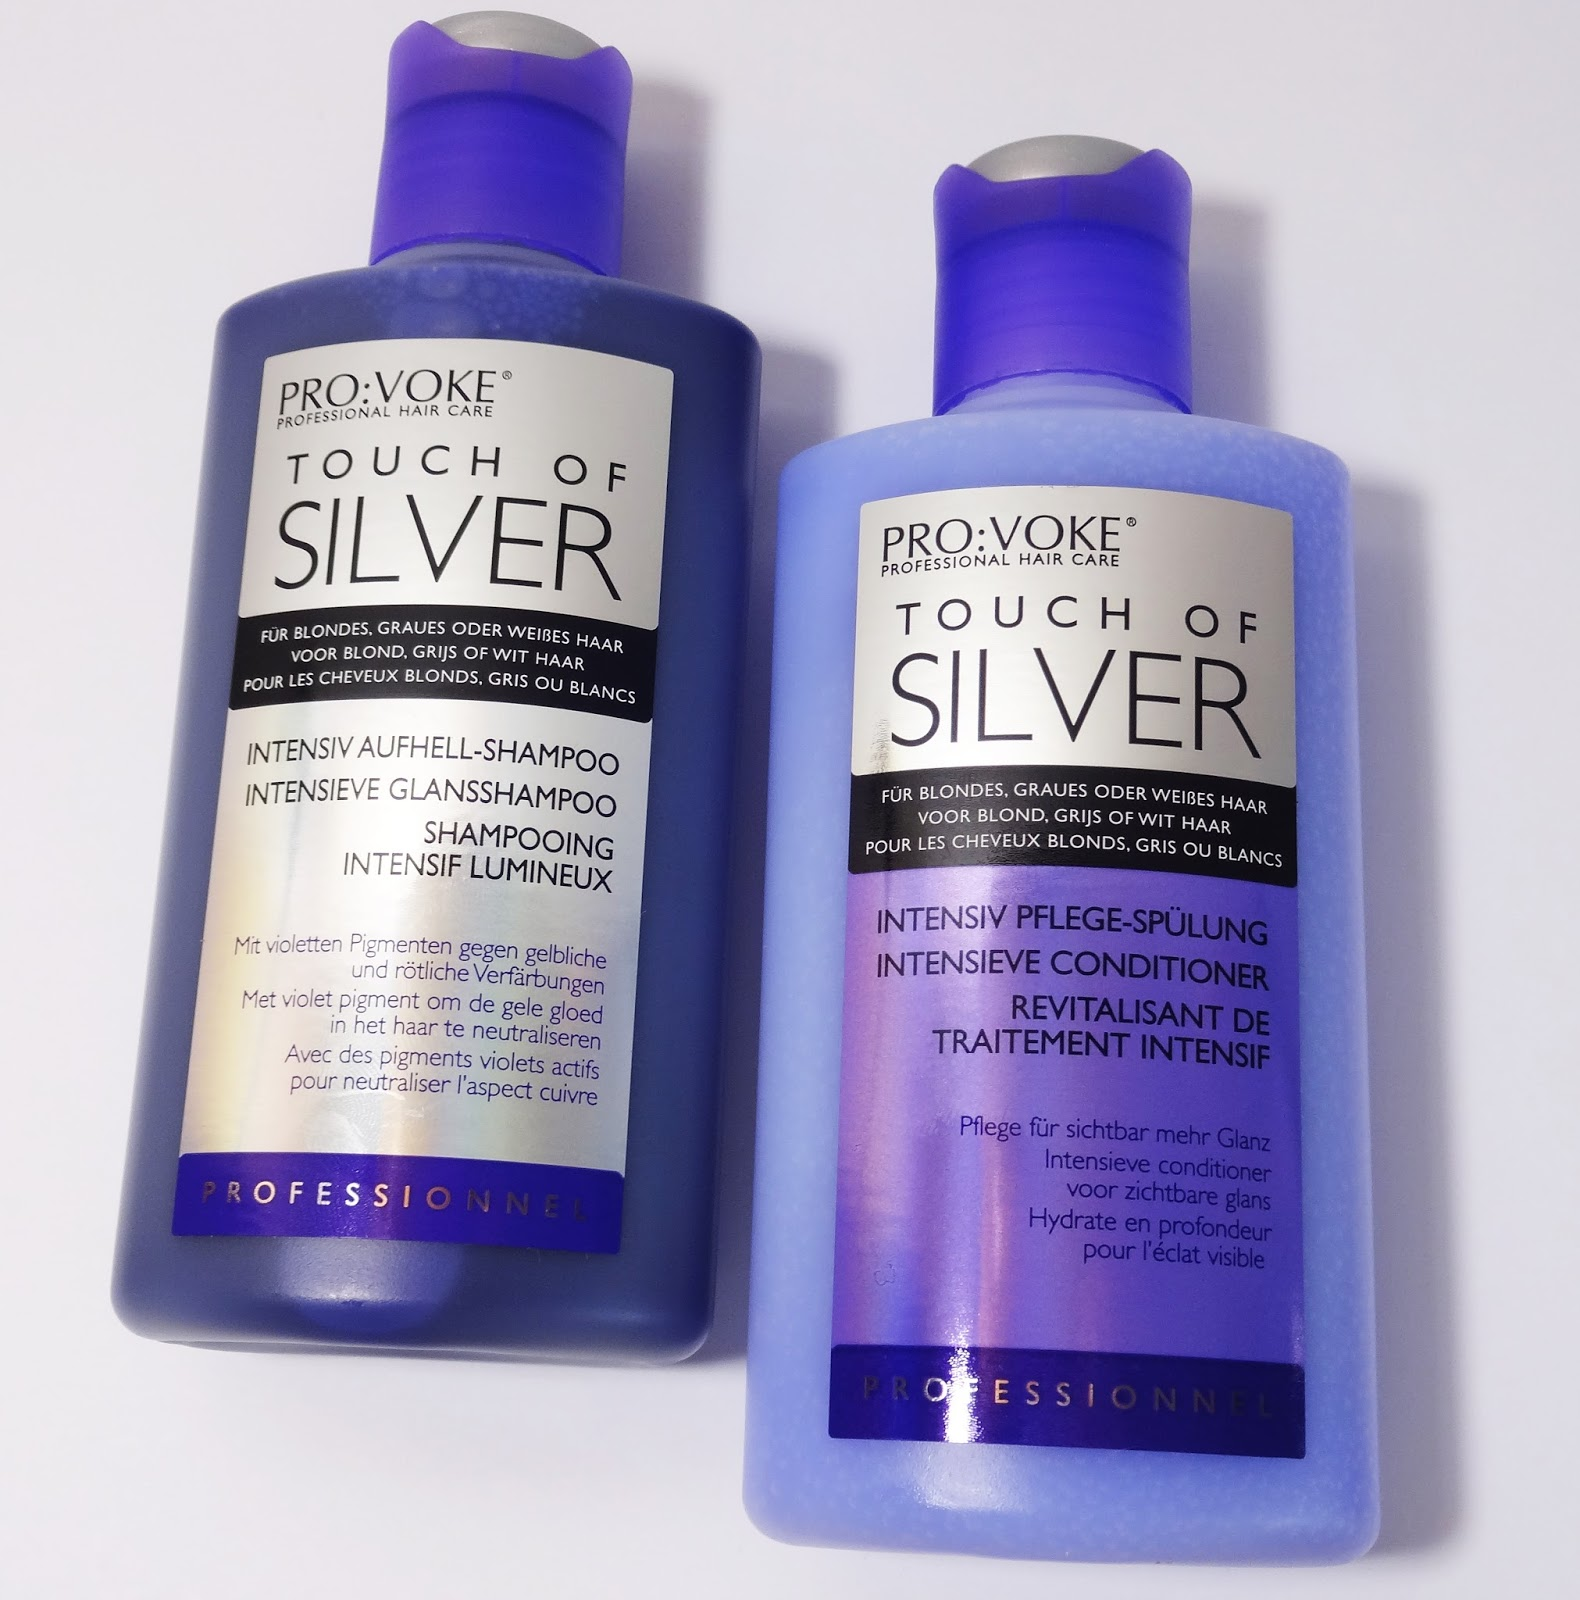 Pro:Voke - Touch of Silver - Intensiv Aufhell-Shampoo & Pflege-Spülung